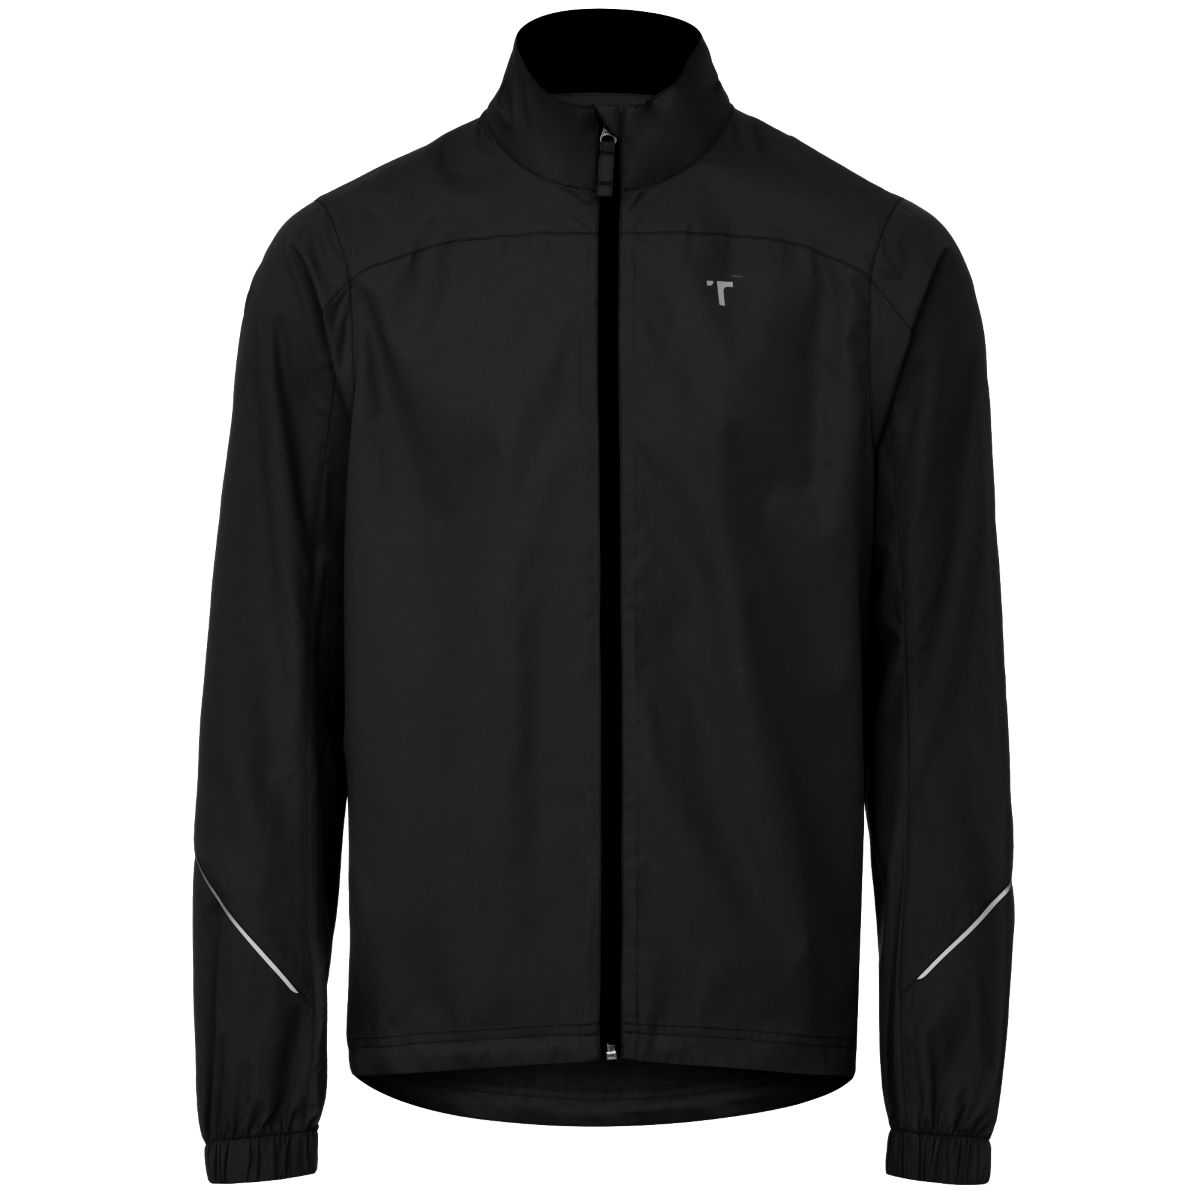 oneten Cycling Jacket - Chaquetas